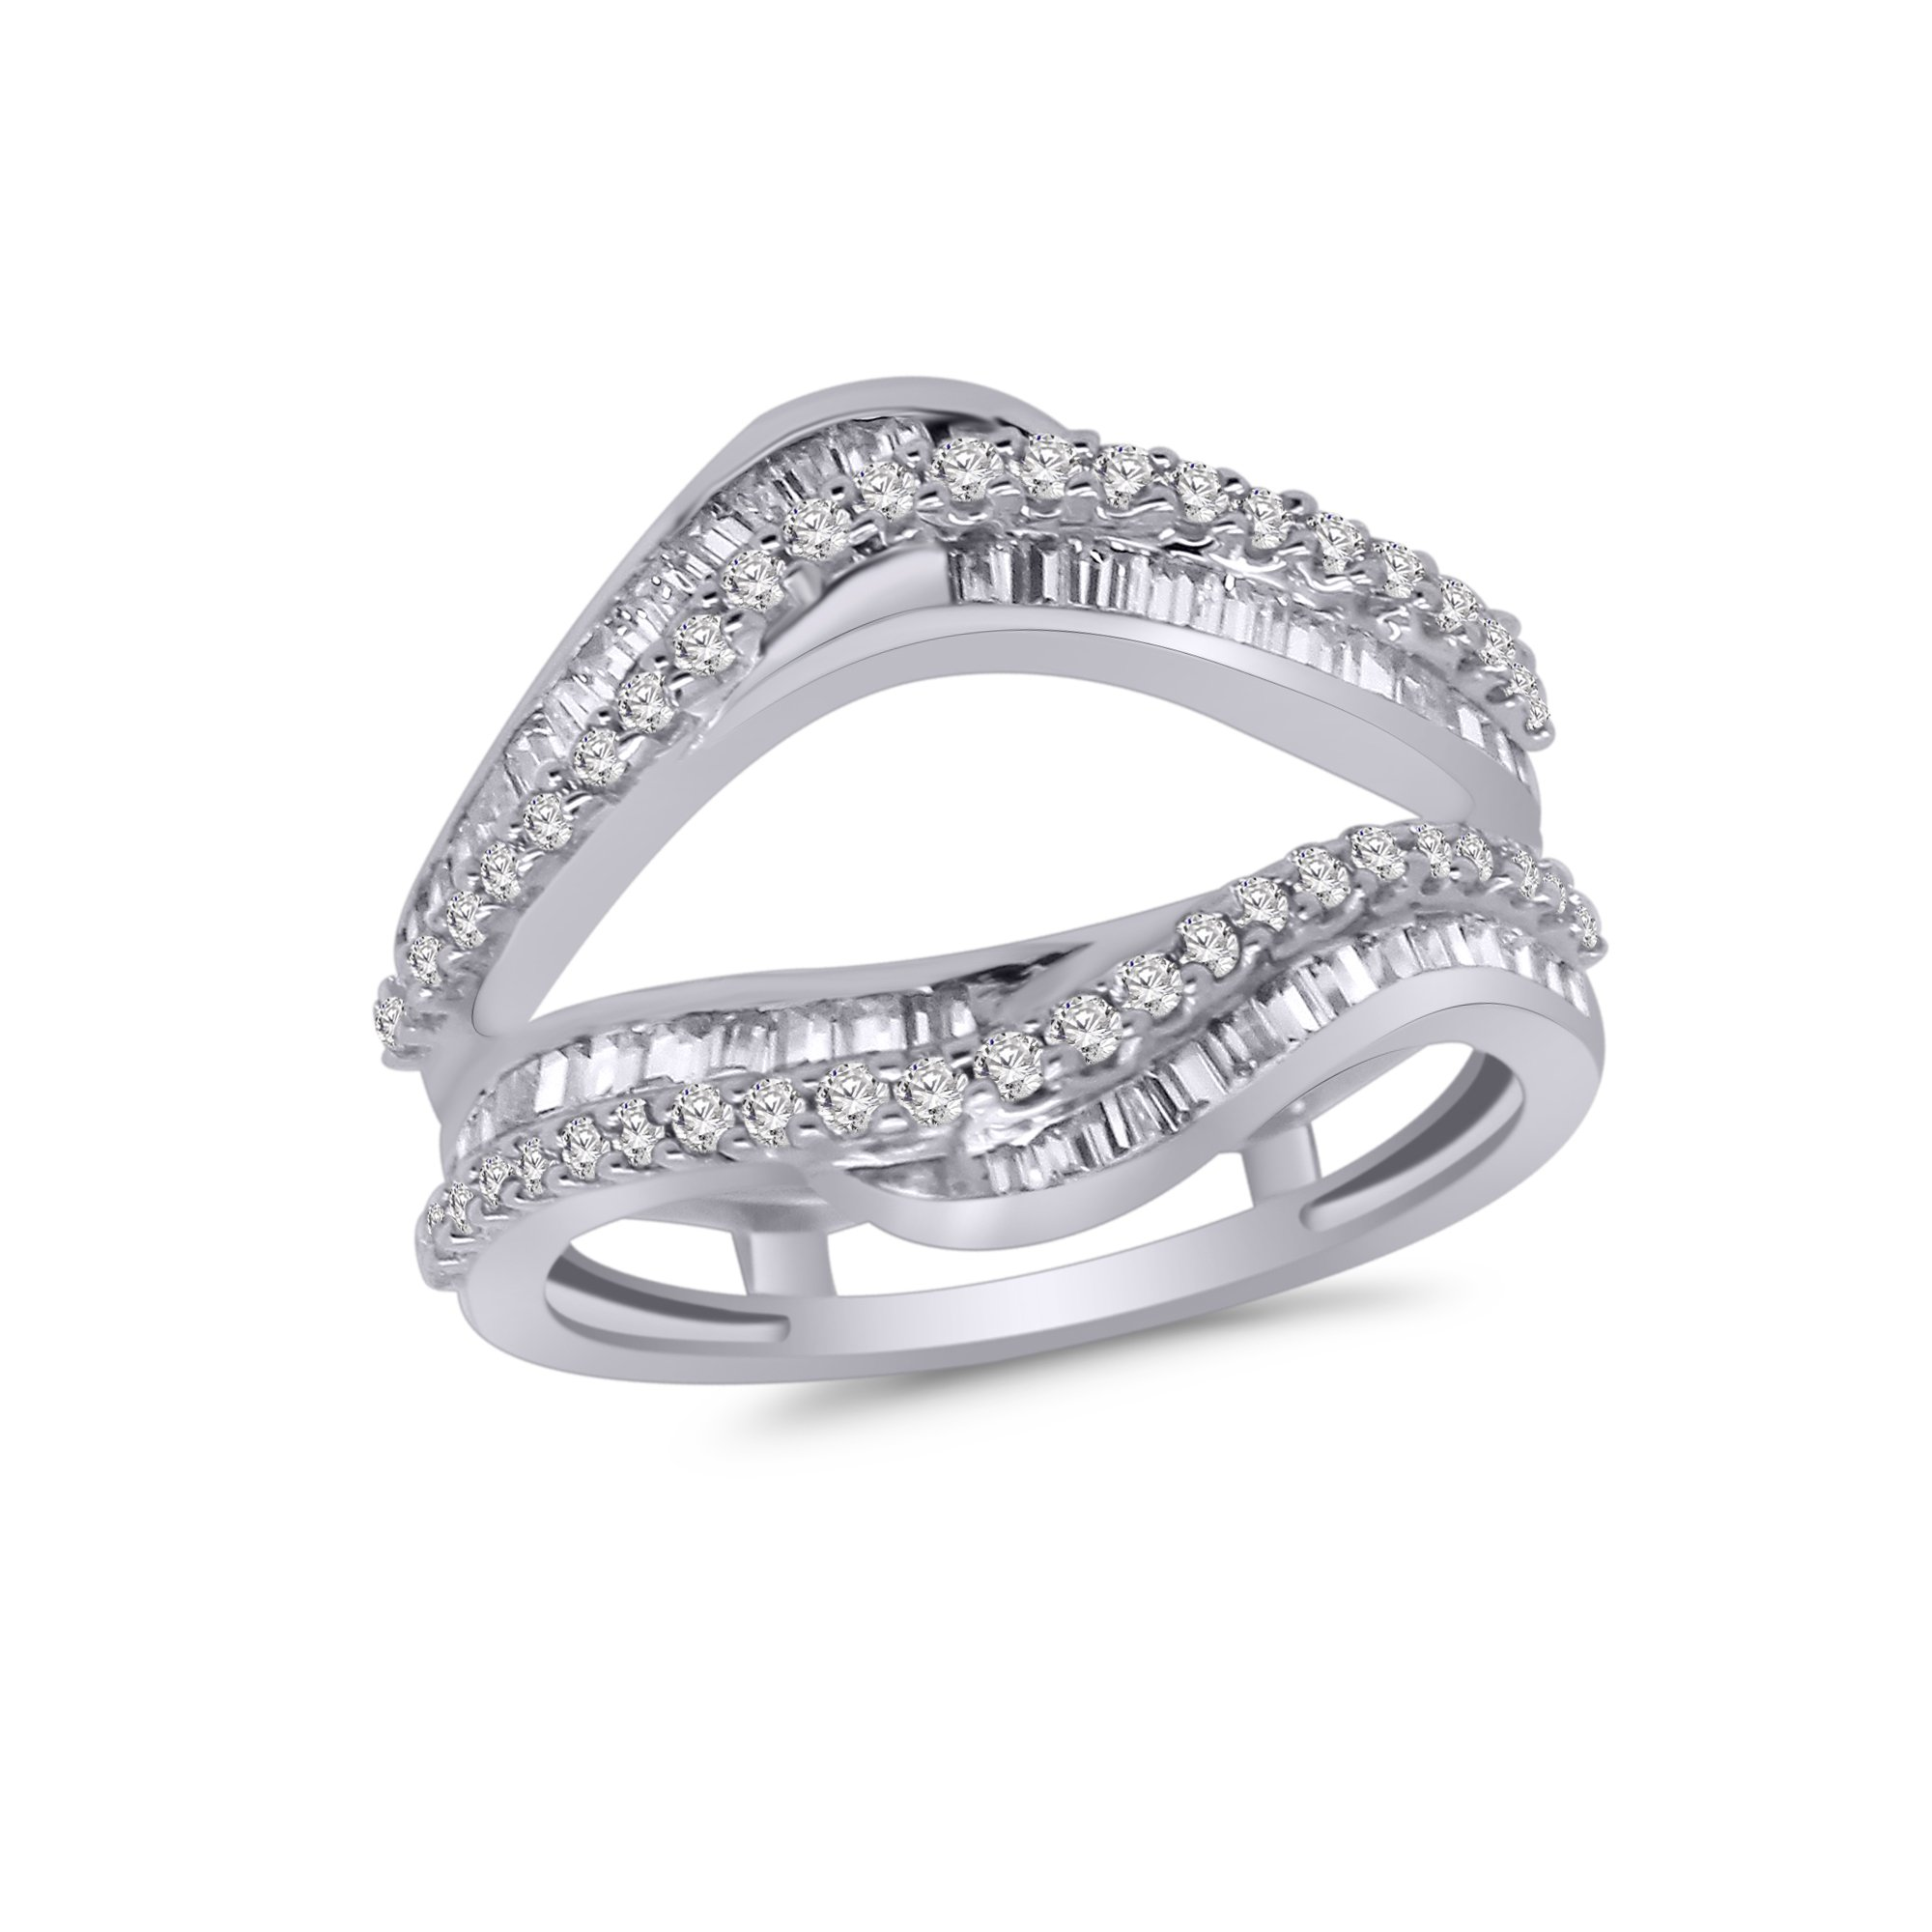 OMEGA JEWELLERY 0.95 Ct Round & Baguette Shape Real Diamond Wrap Enhancer Ring in 14K White Gold (6.5)